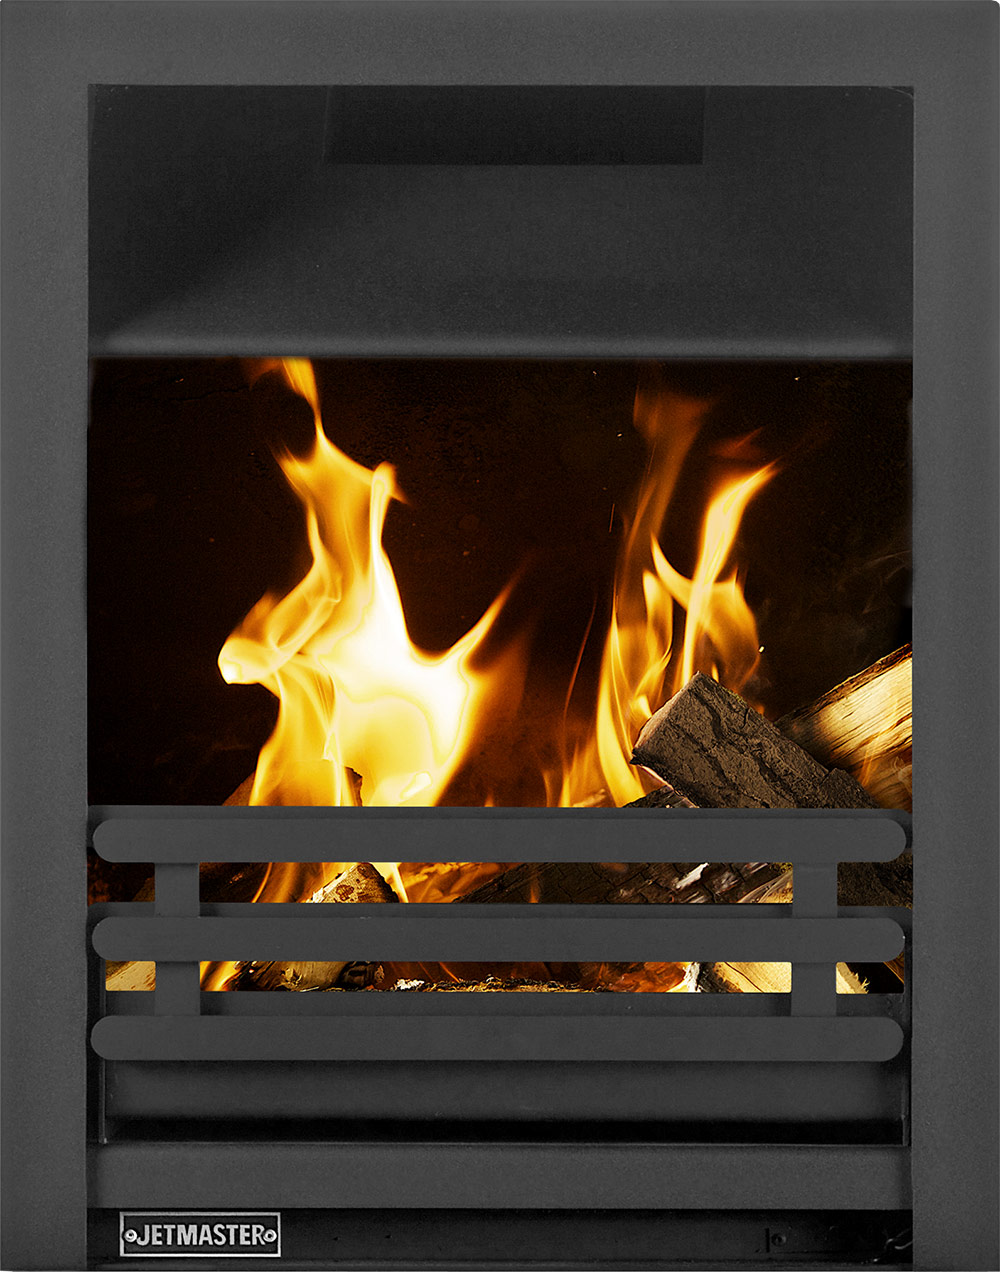 jetmaster natural convection open fires 55 efficient